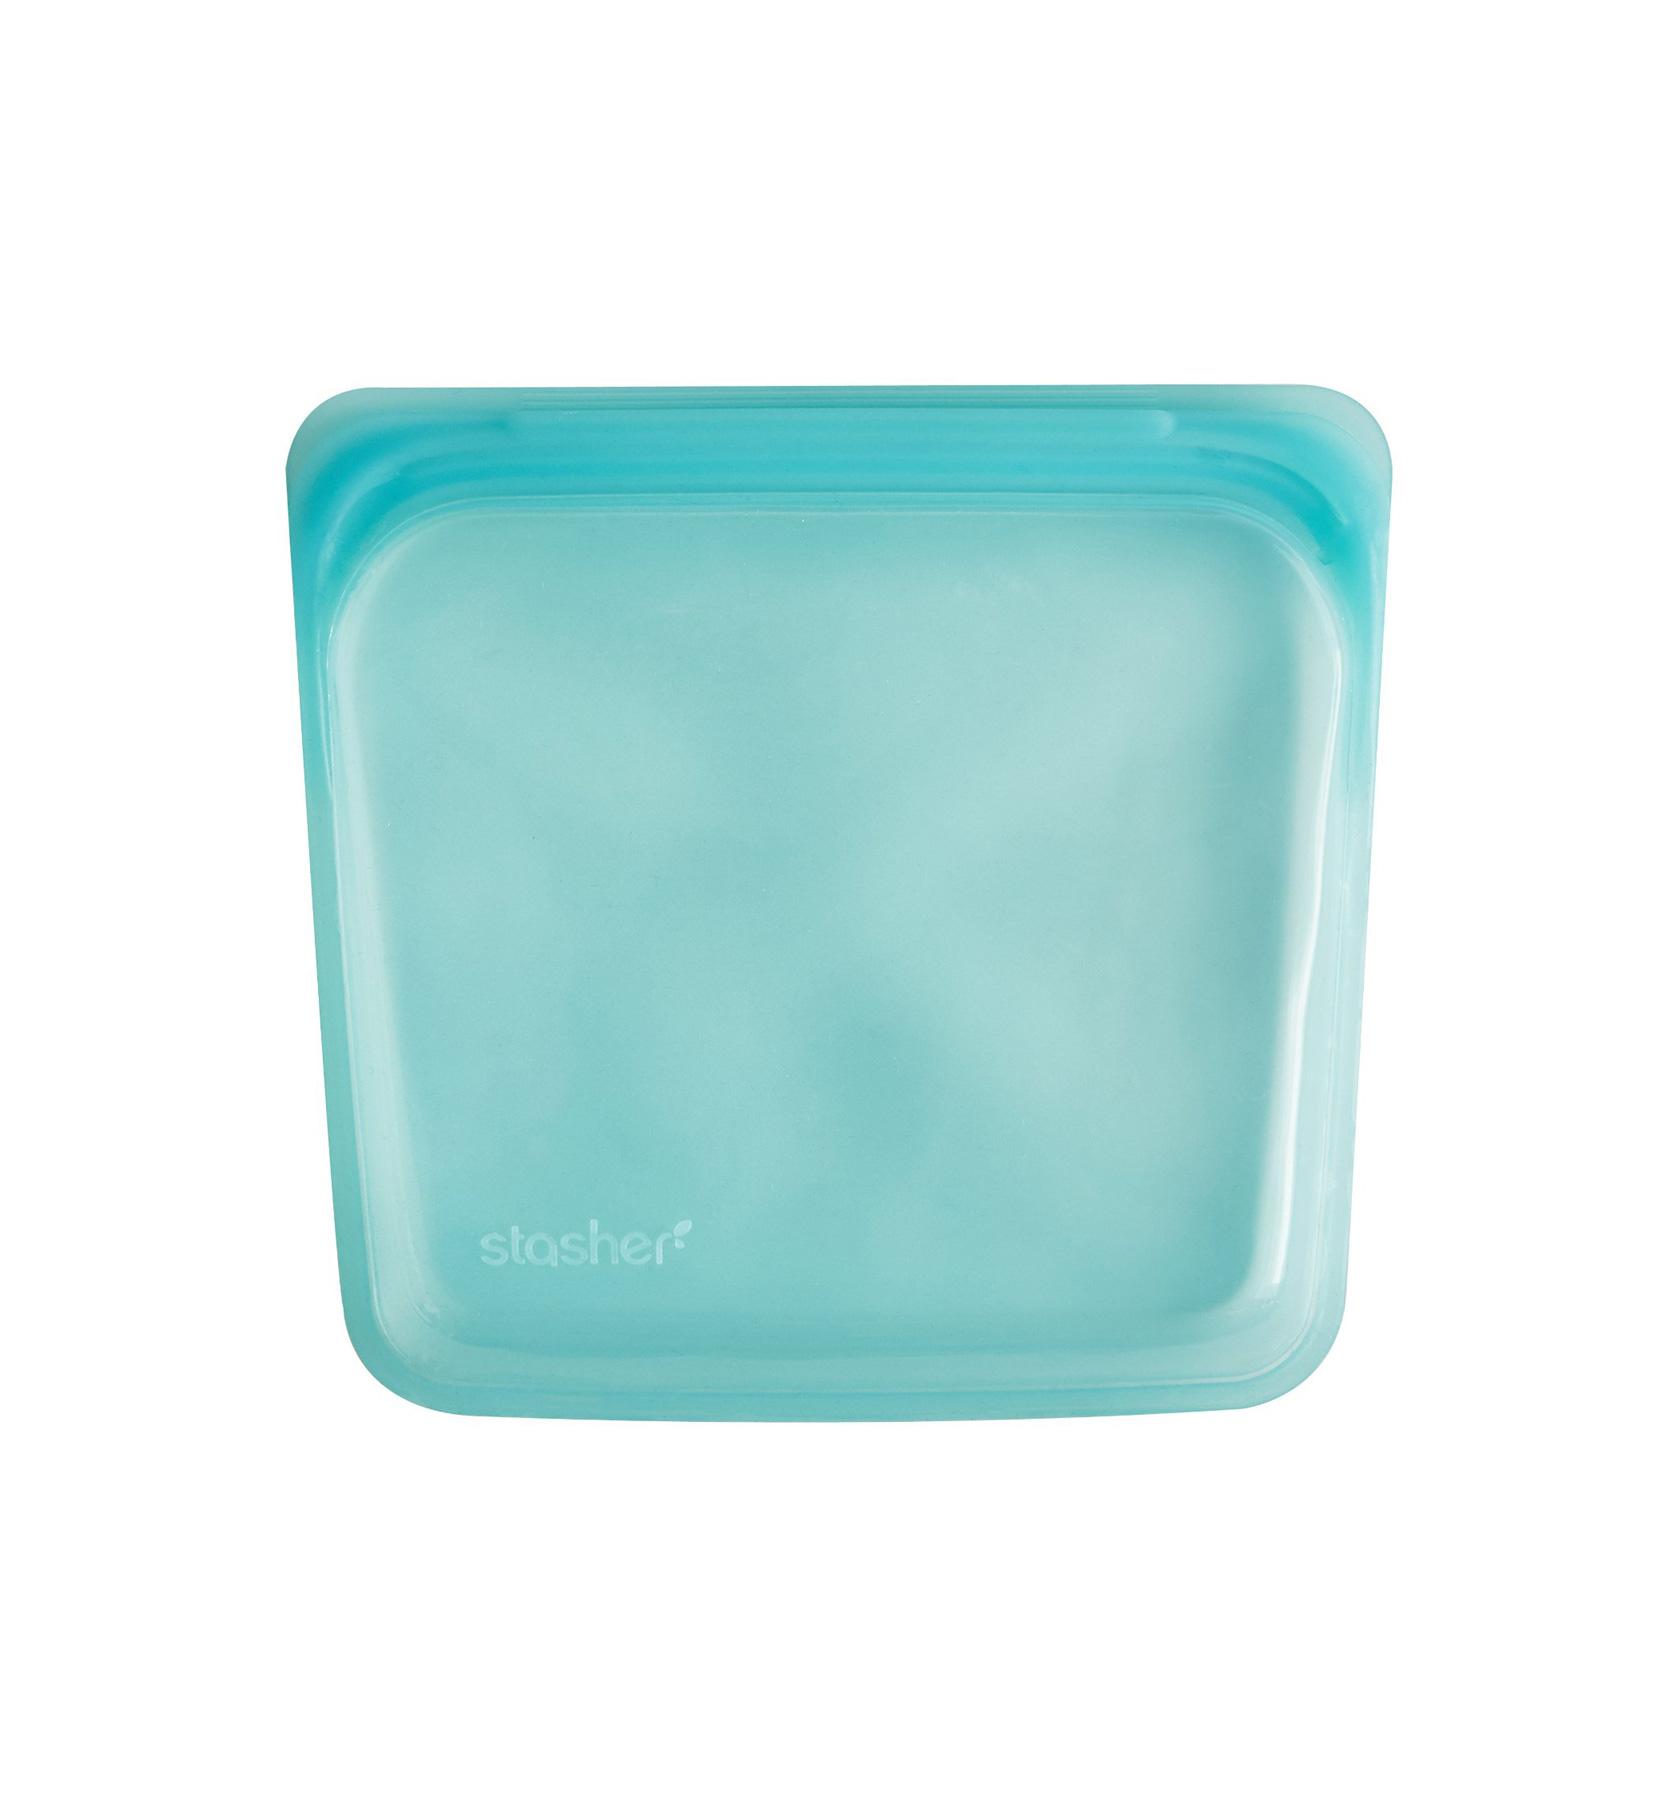 20 percent off Stasher reusable silicone food bags.